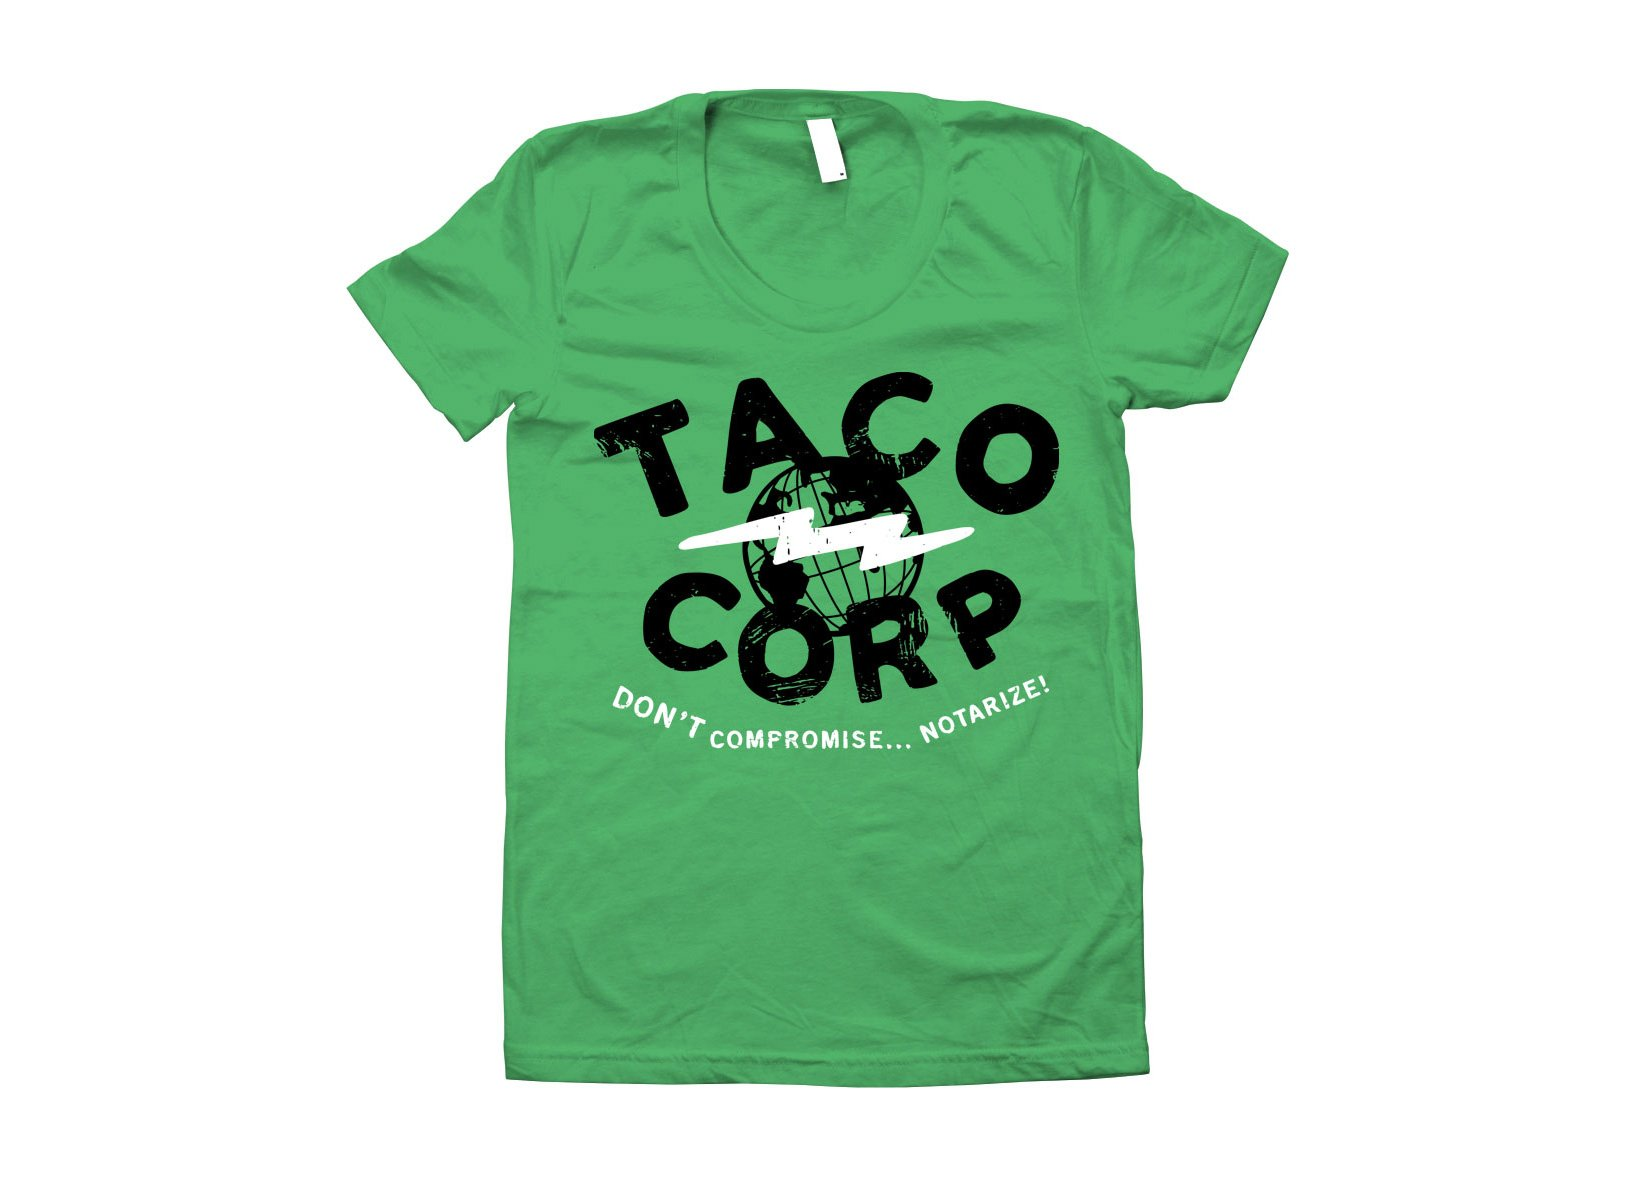 Taco Corp on Juniors T-Shirt